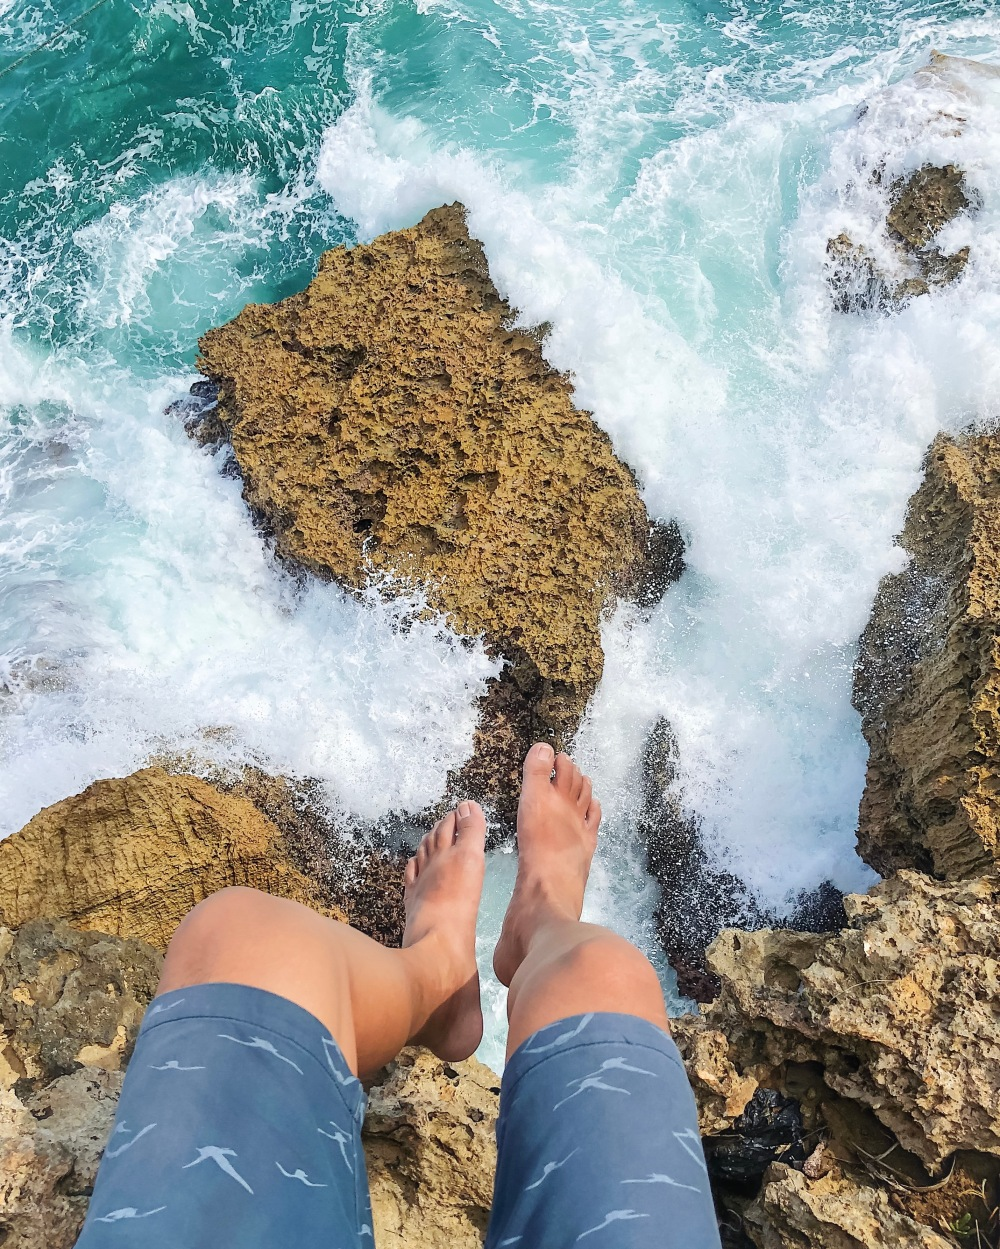 HUMONGOUS. Big, emerald waves crash on the coastline of Timang Beach, which is made up of rocky cliffs. After spending some time taking pictures of the surroundings, I decided to sit down and just watch the waves below me as they hit the rocks down there. That moment was very memorable as I really felt the energy of the sea against the seemingly steady yet diminishing toughness of the land.